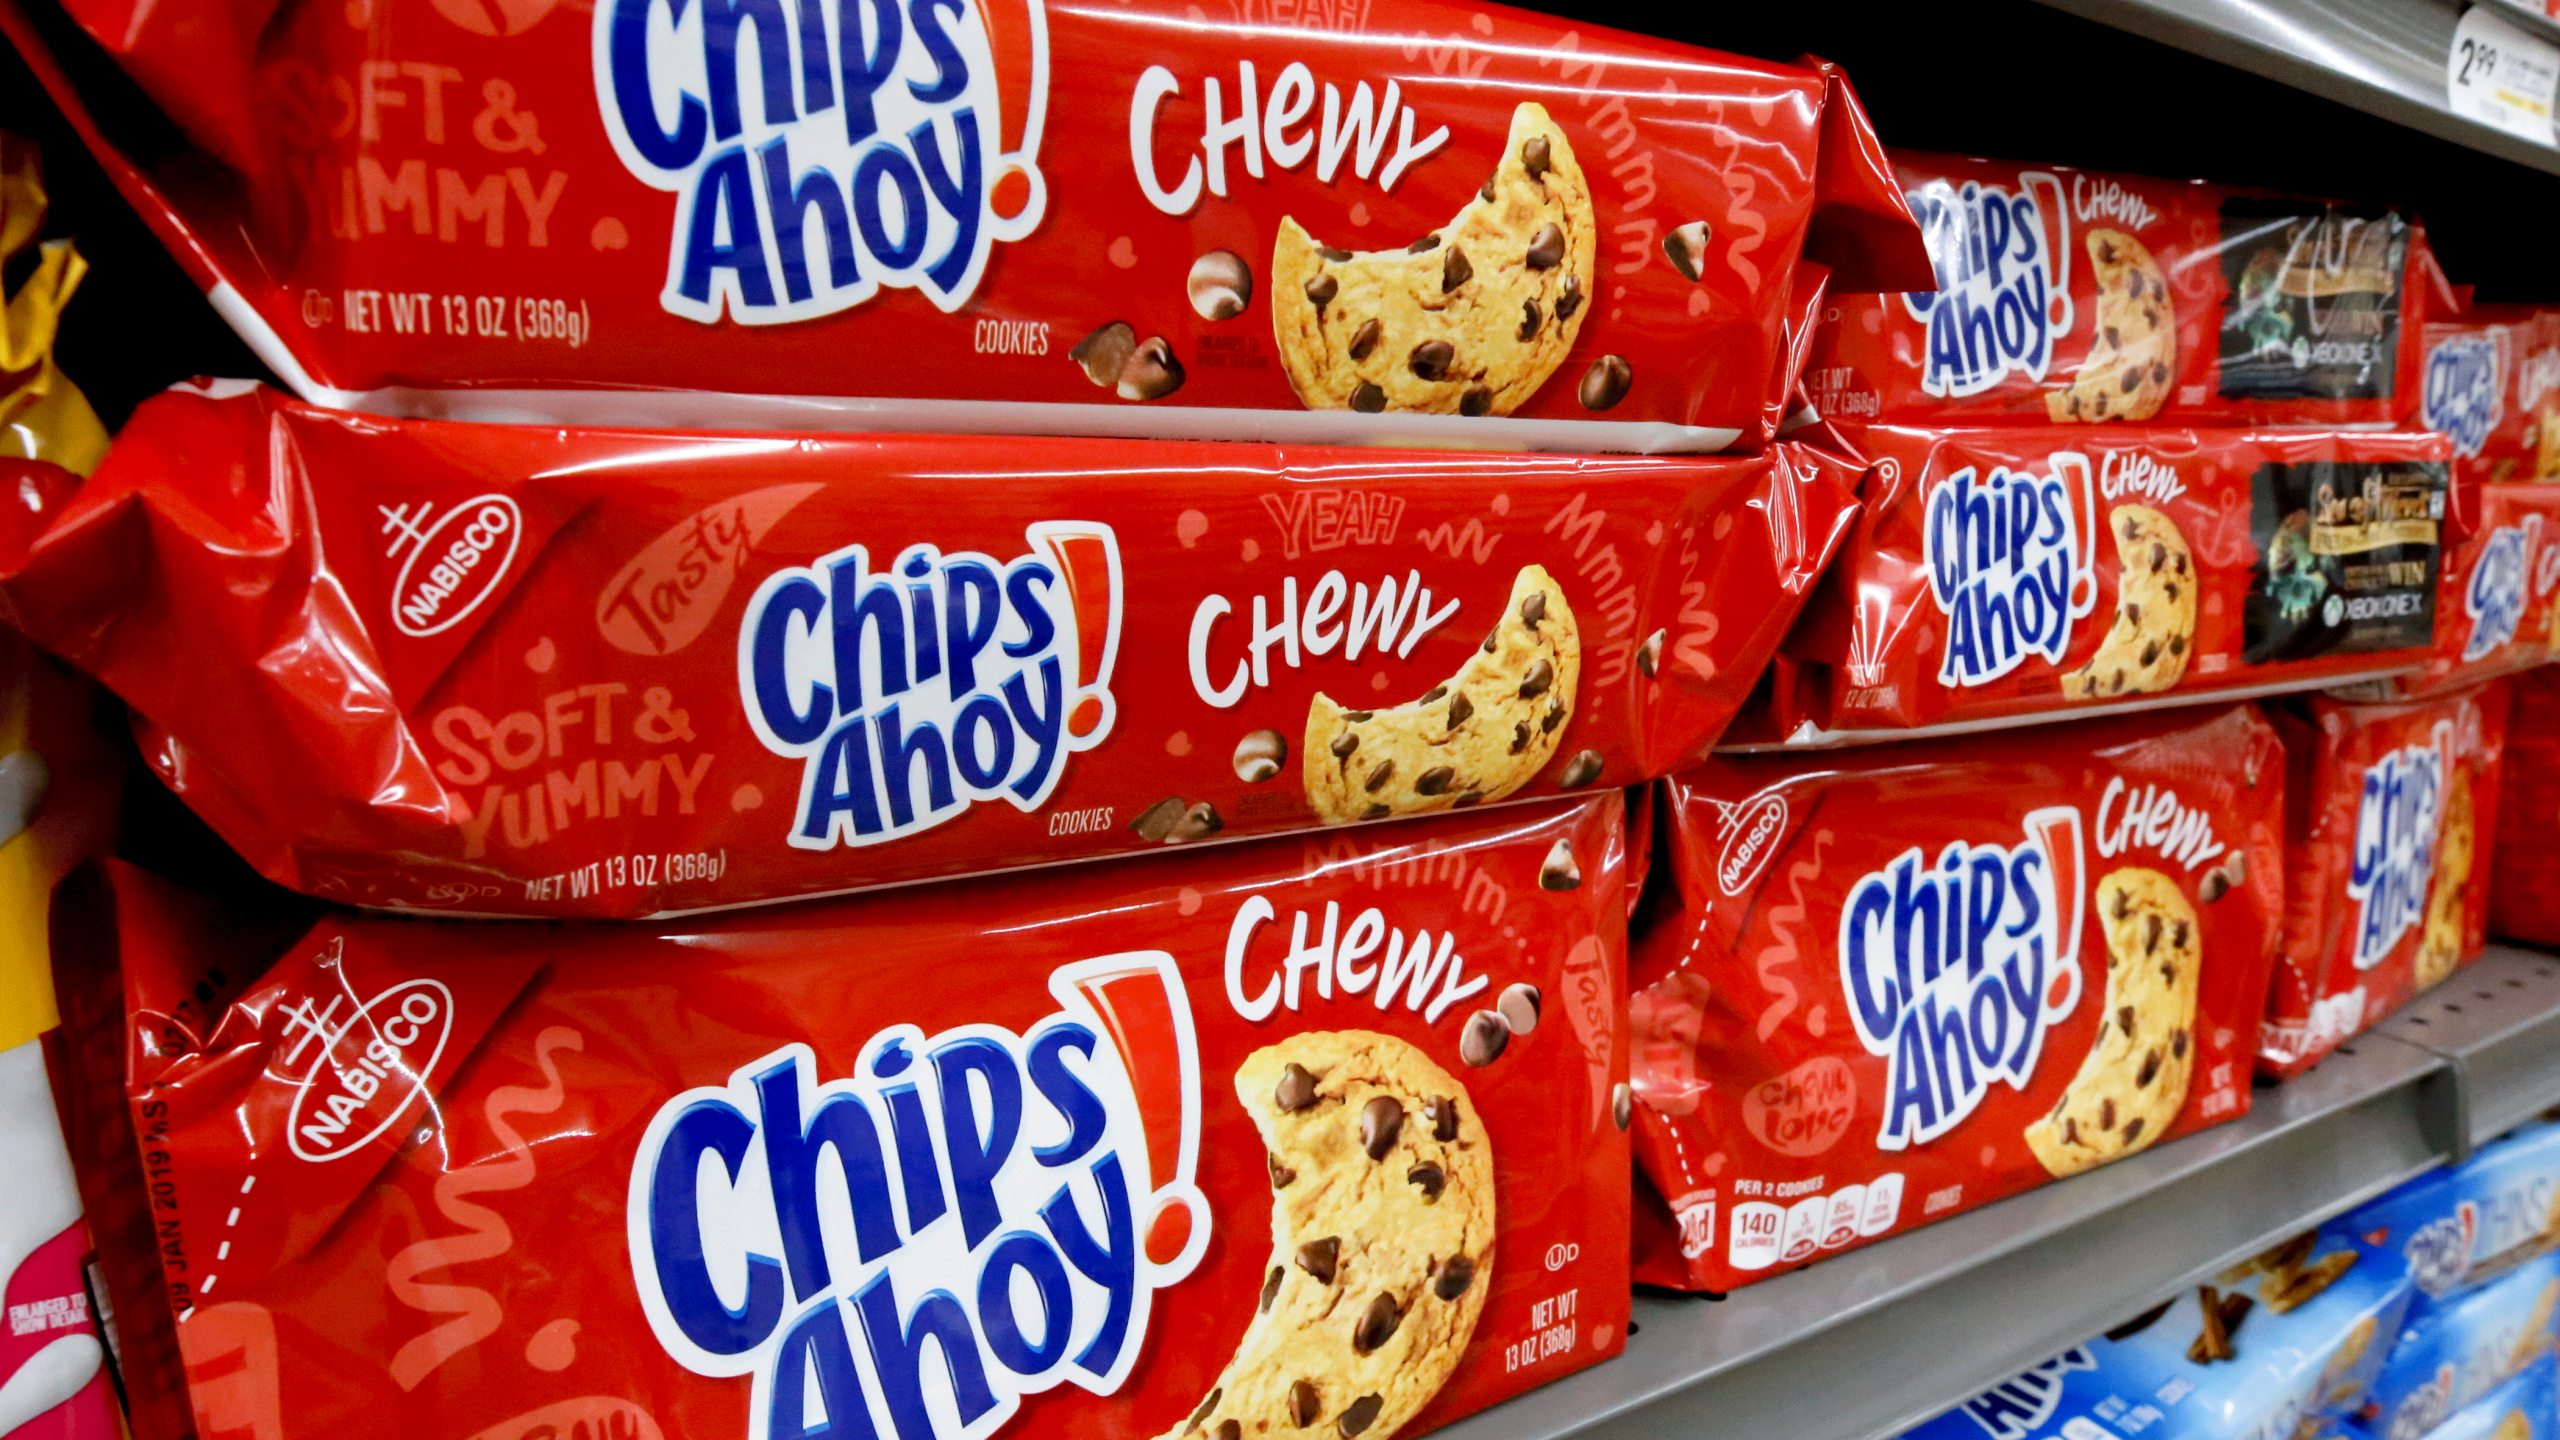 Chewy-Chips-Ahoy--AP_1555454970949.png